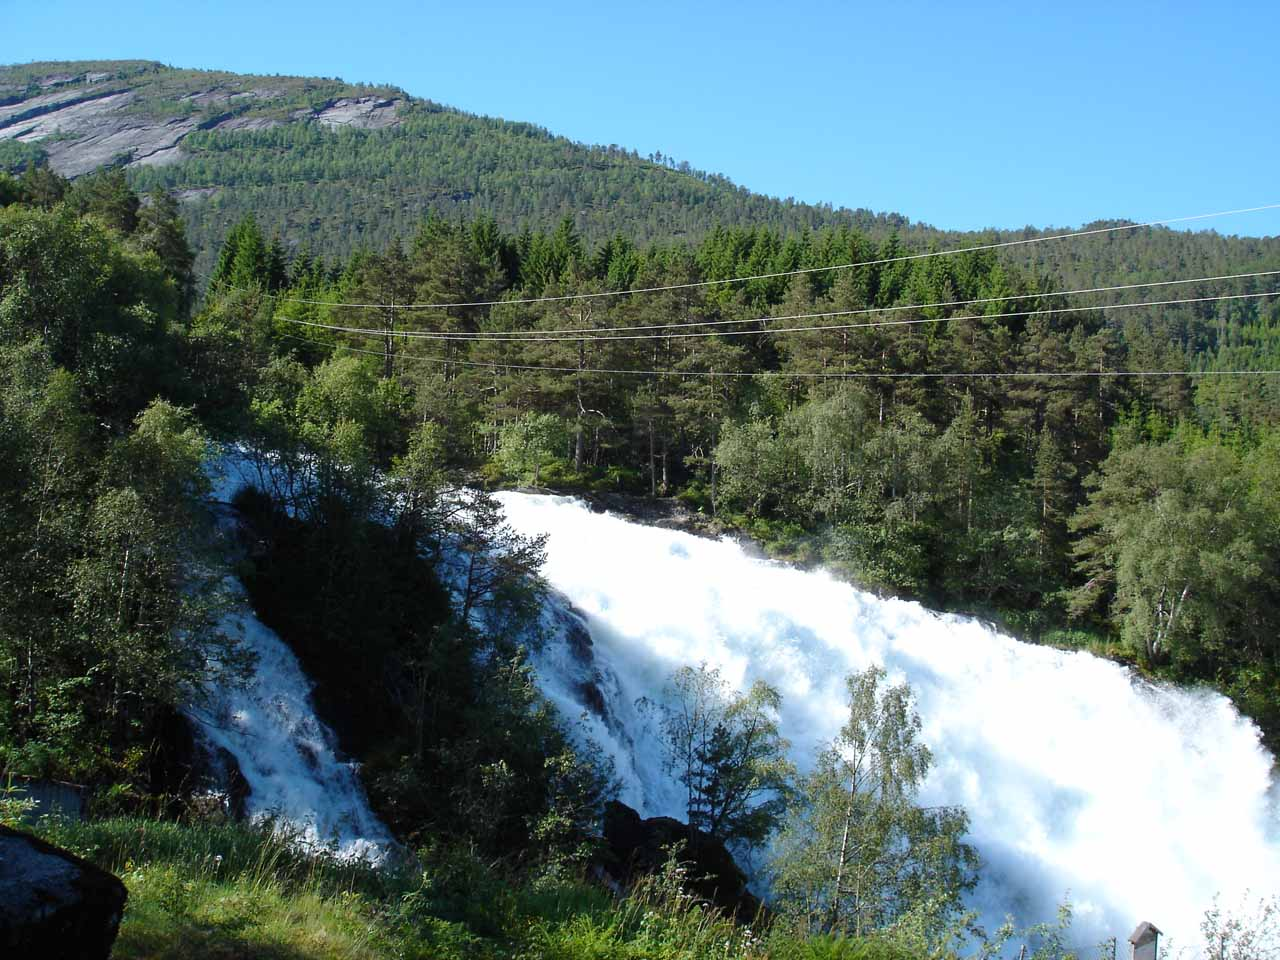 This was the view of Eidsfossen from Julie's perspective as she went right up to the fence by the salmon ladder besides the falls